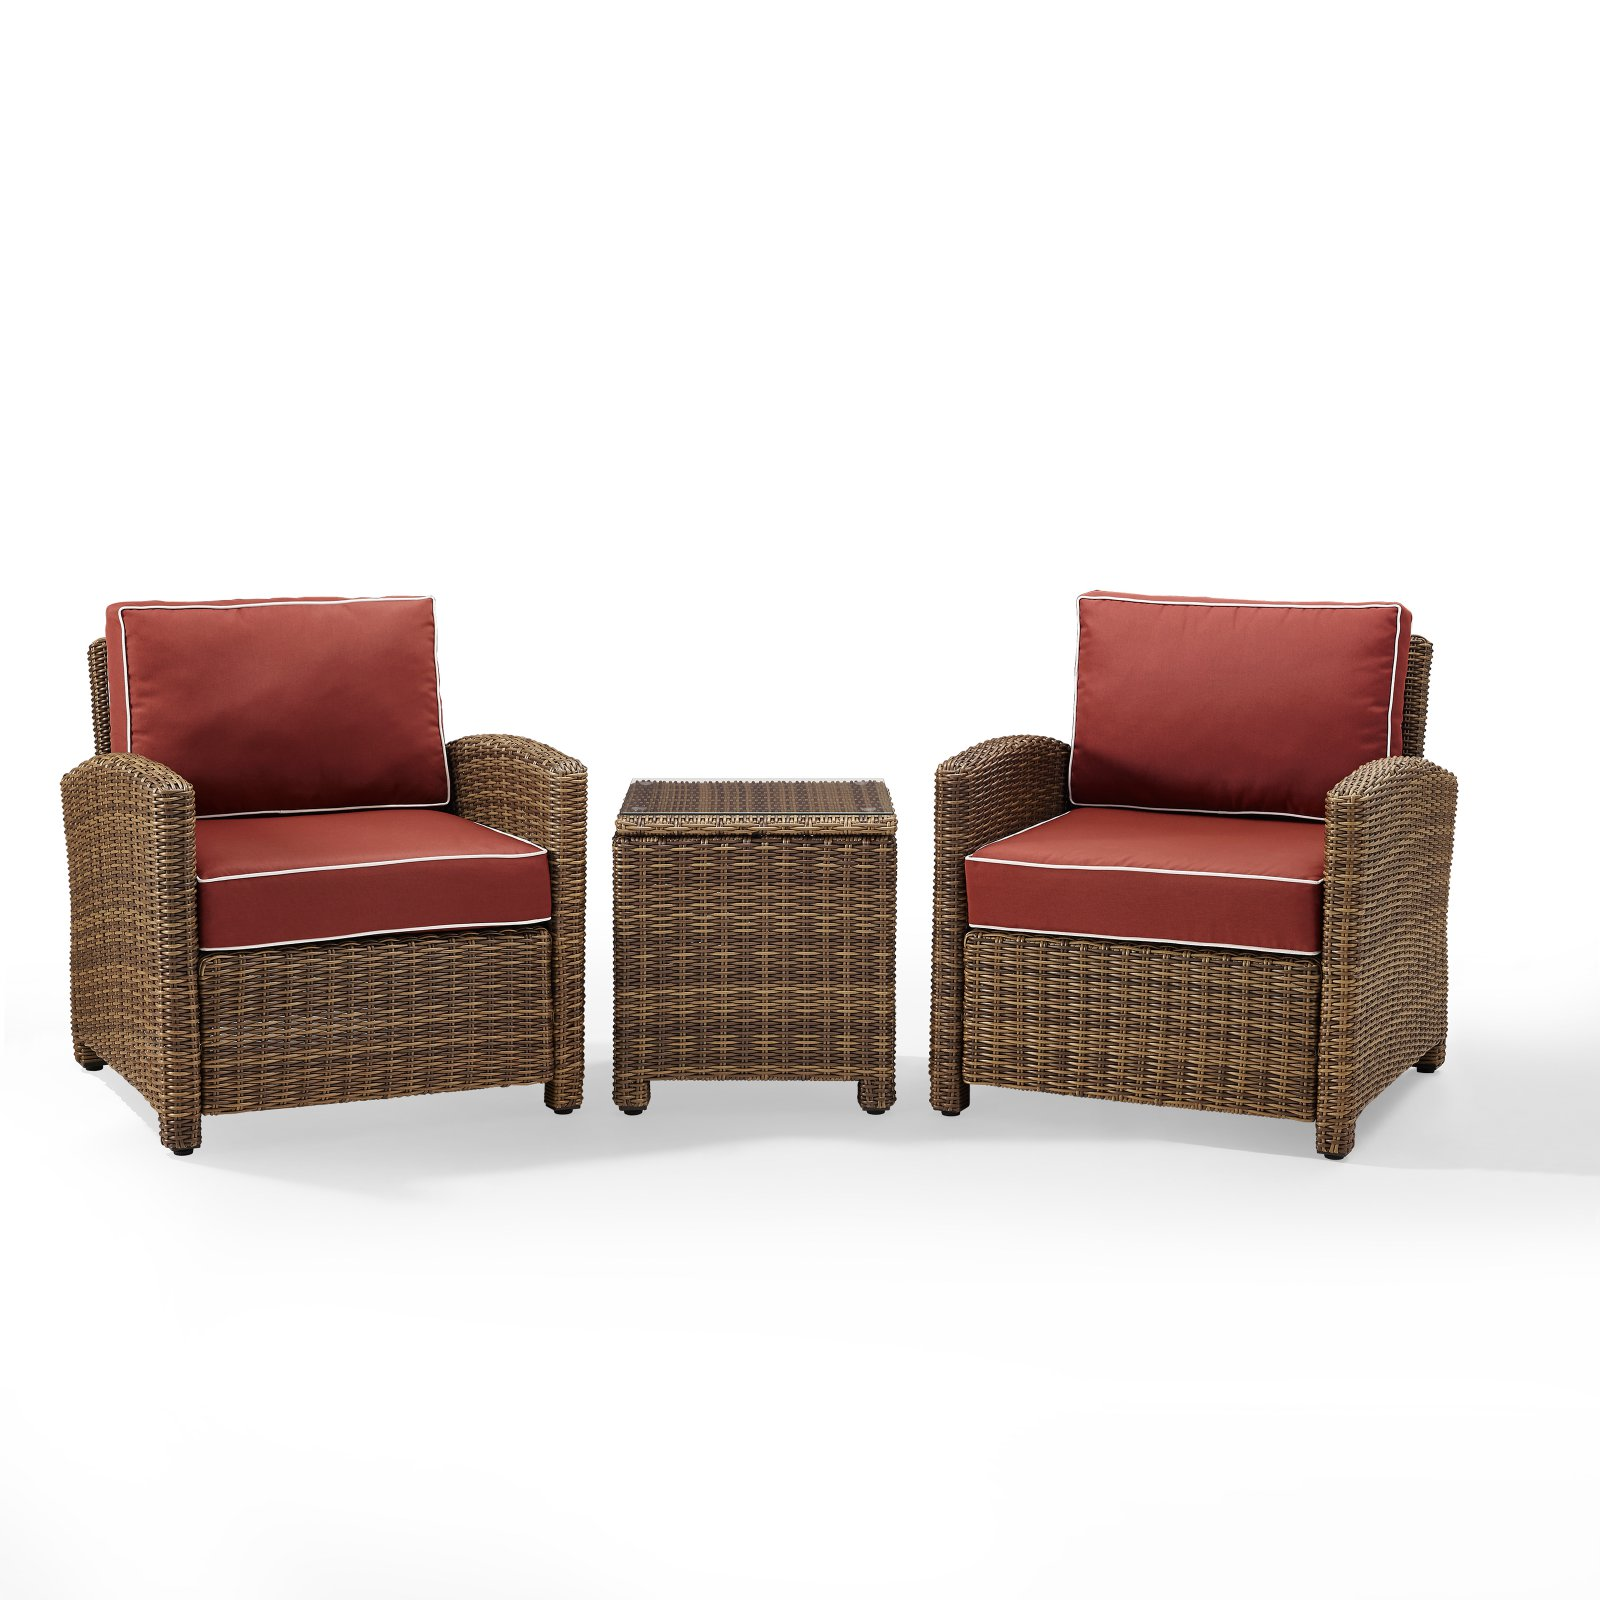 Crosley Furniture Bradenton 3-Piece Outdoor Wicker Conversation Set with Navy Cushions - Two Arm Chairs & Side Table